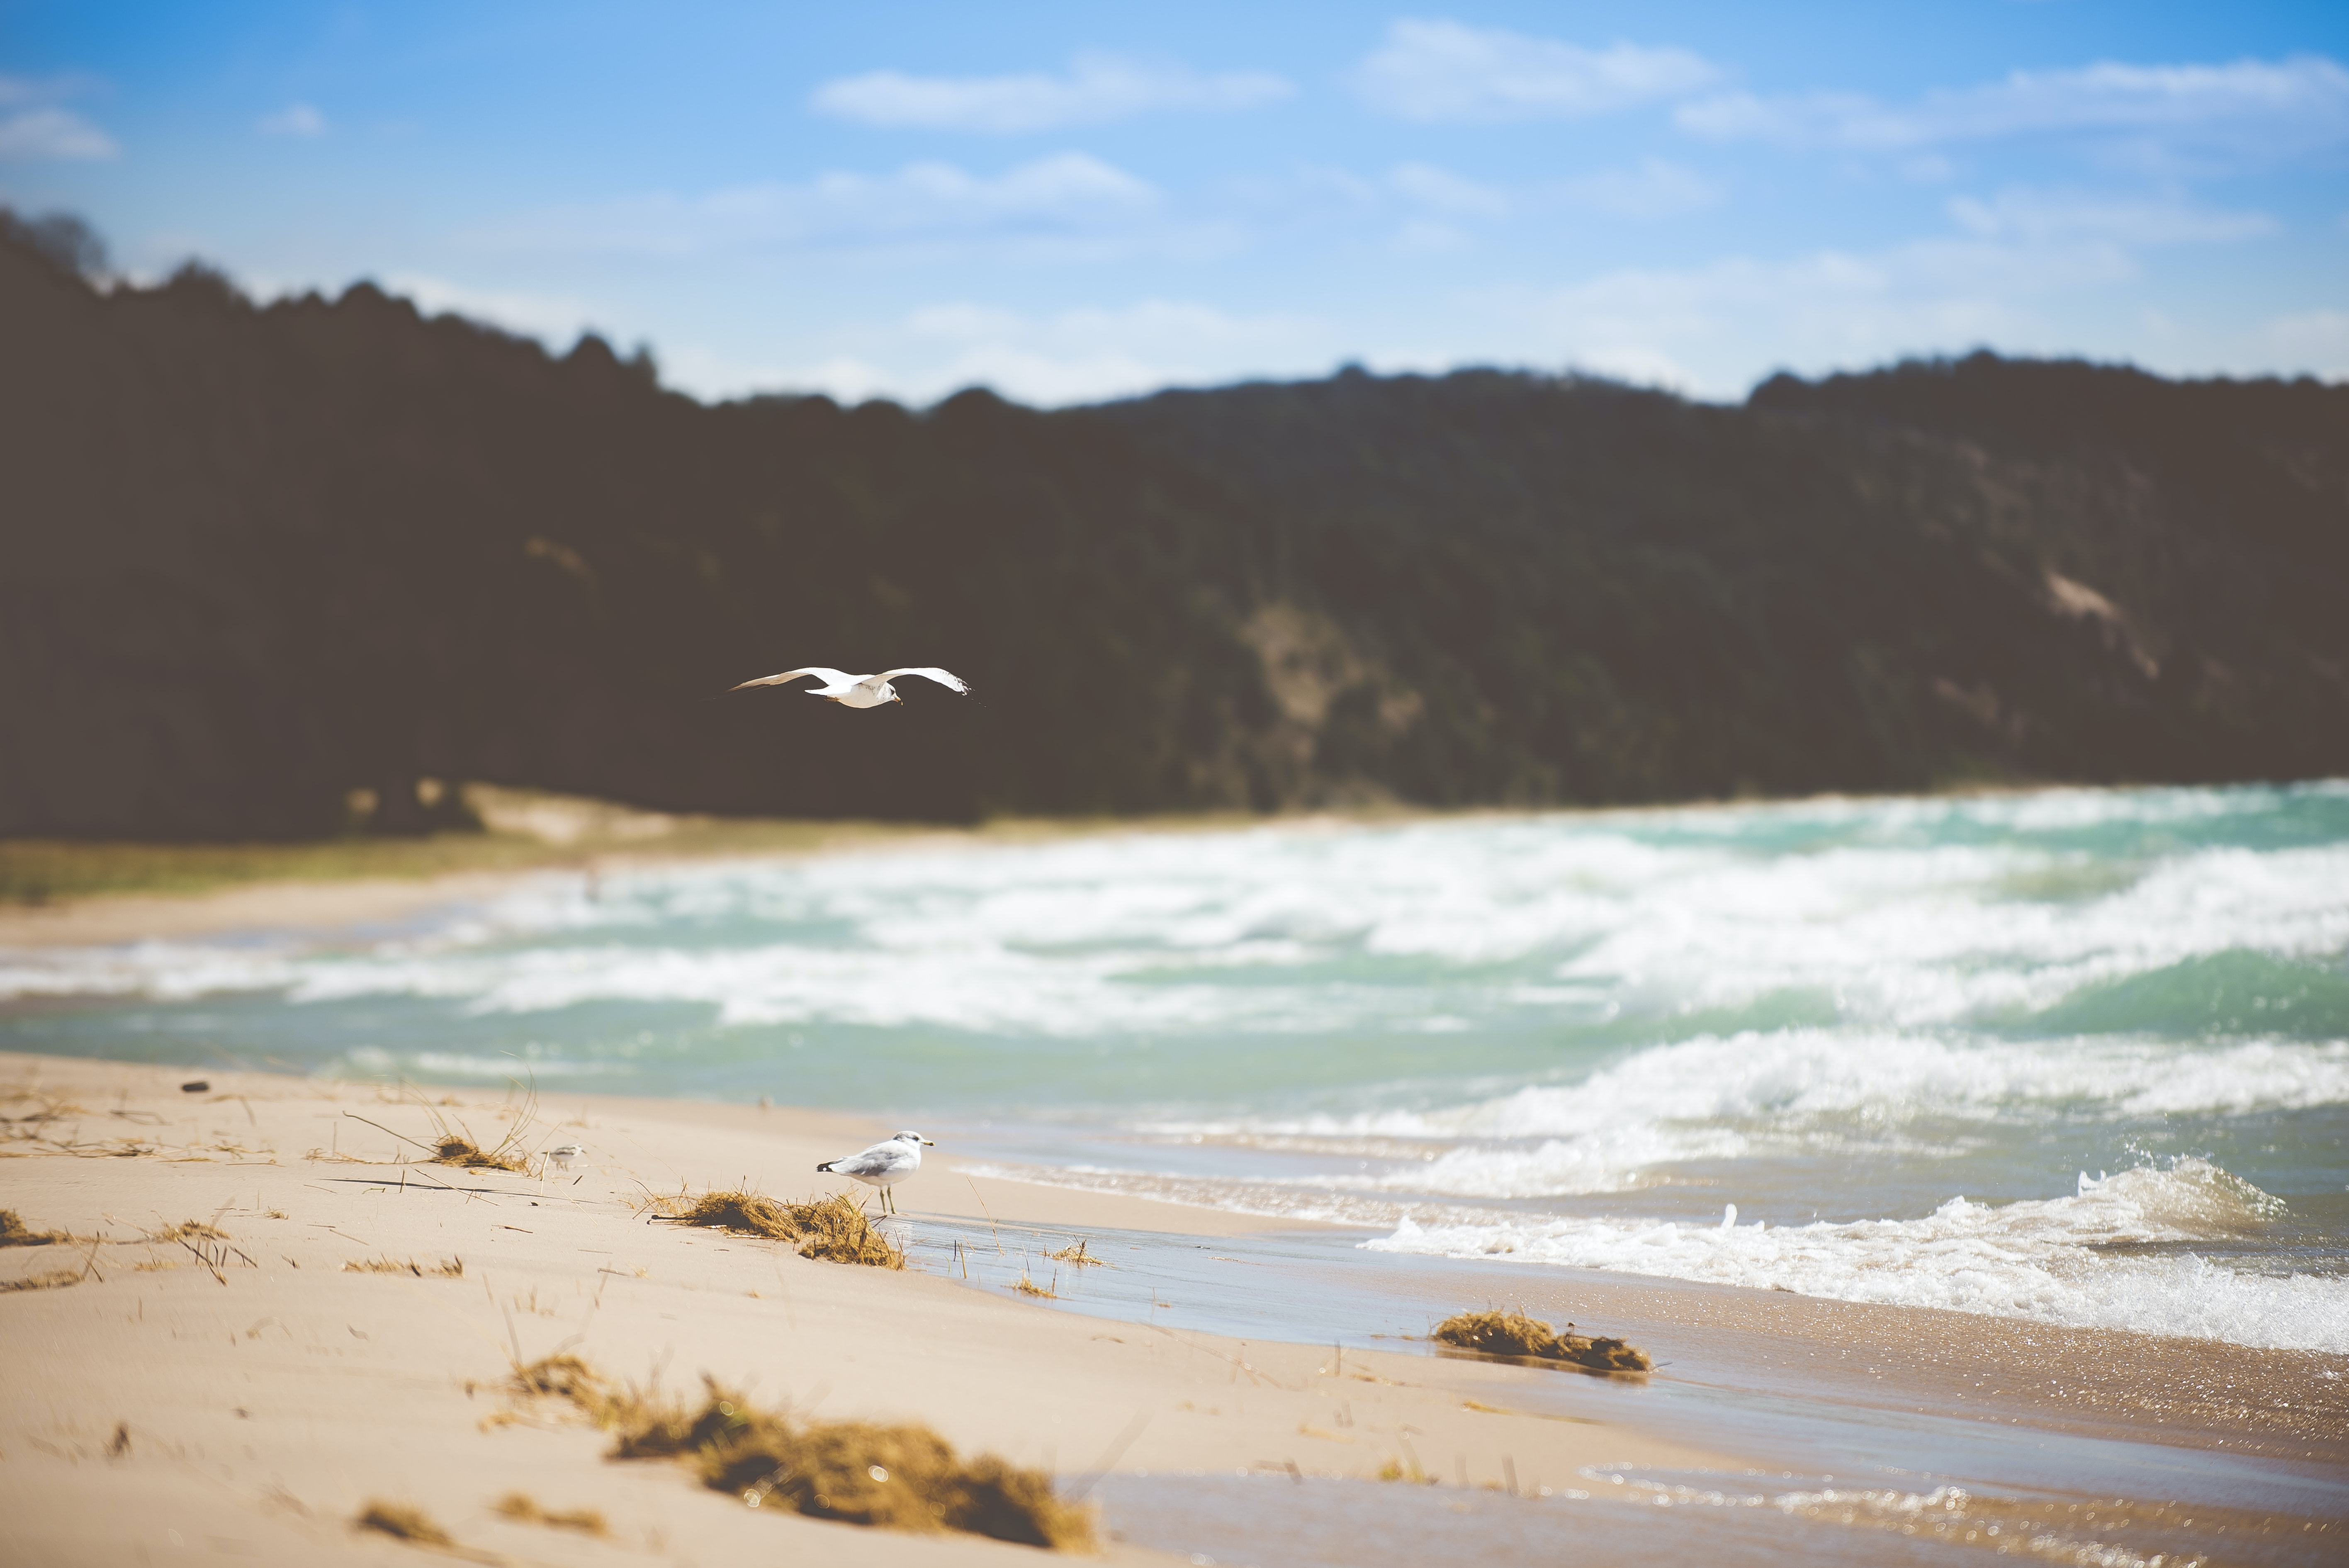 seagull flying above beach shore